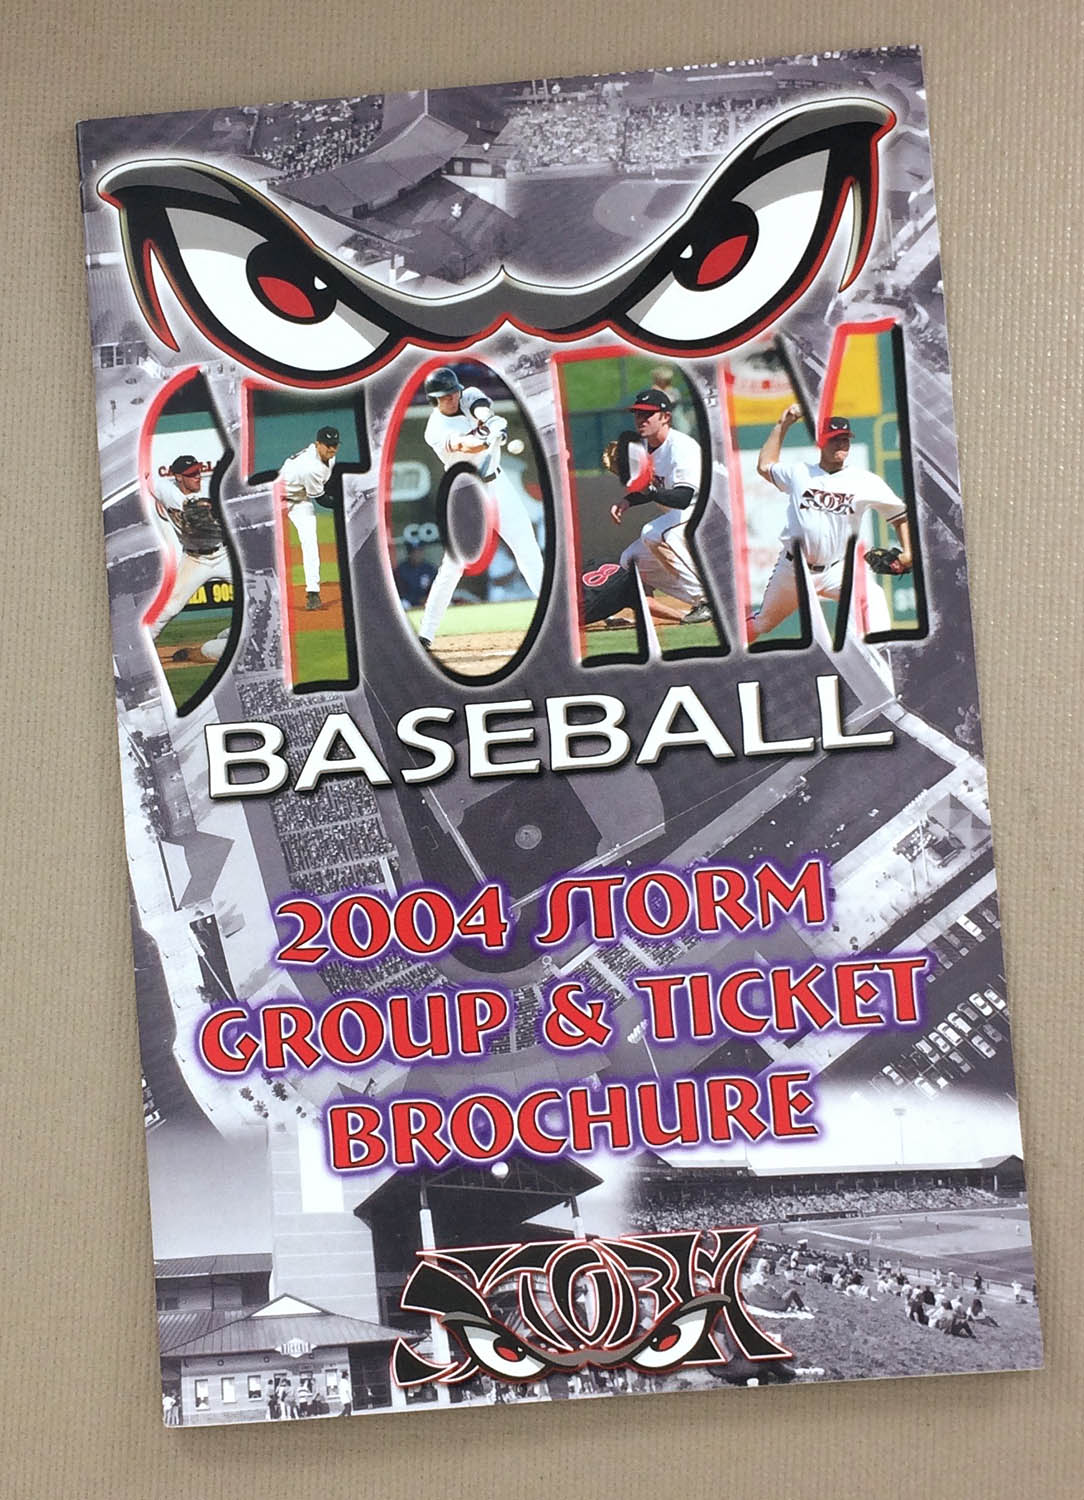 Lake Elsinore Storm 2004 Ticket Brochure